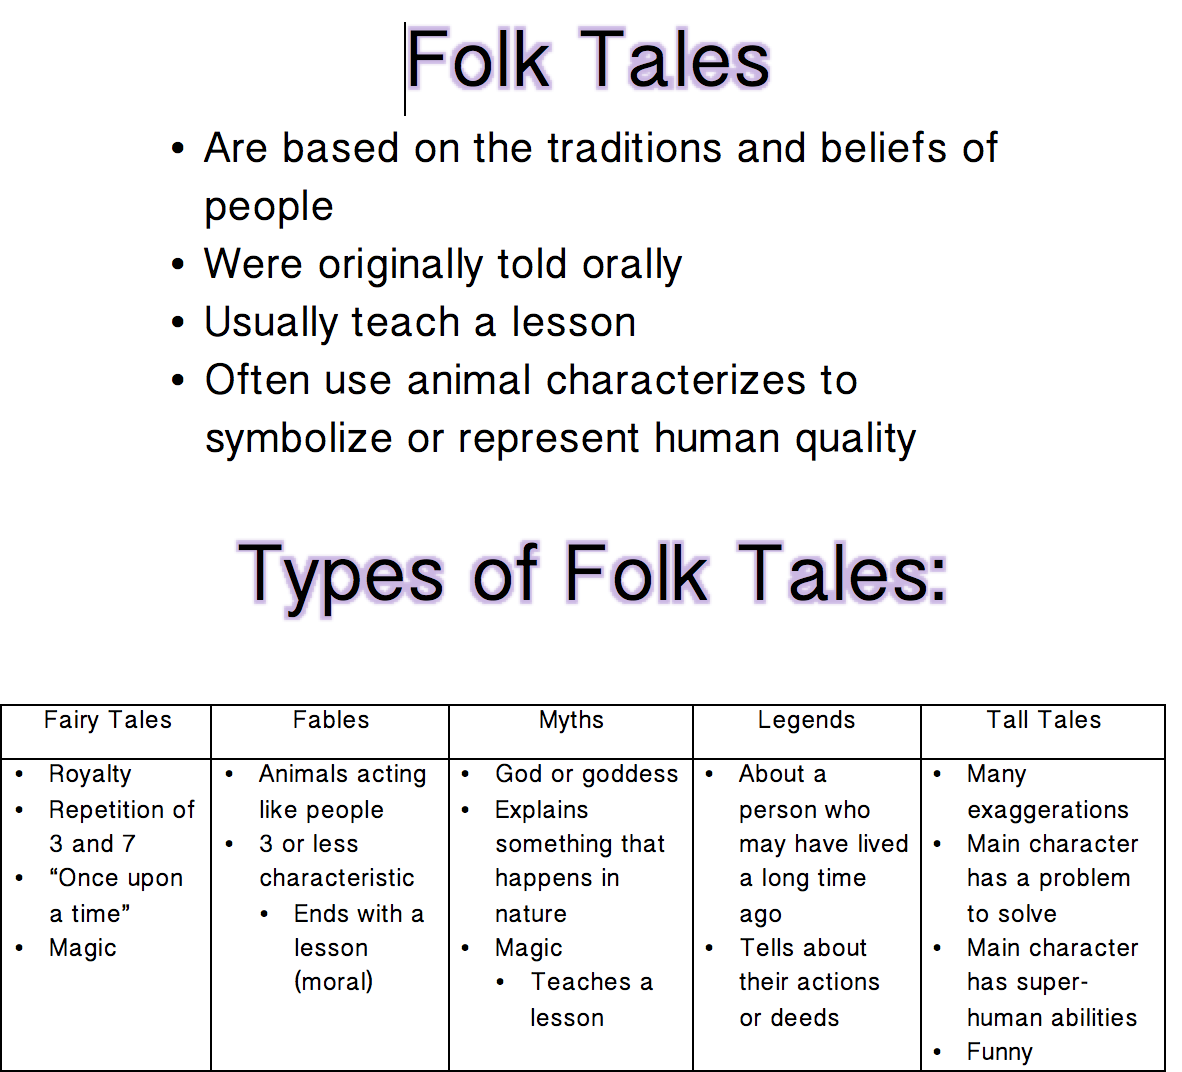 writing a fable Decide what can happen to your characters that would lead to the moral you have chosen now you are ready to write your fable remember to: ✓ use capital letters and full stops for you sentences ✓ use speech marks around spoken words ✓ end with a moral ✓ refer to the animals as 'fox' or 'dog', for example – don't.